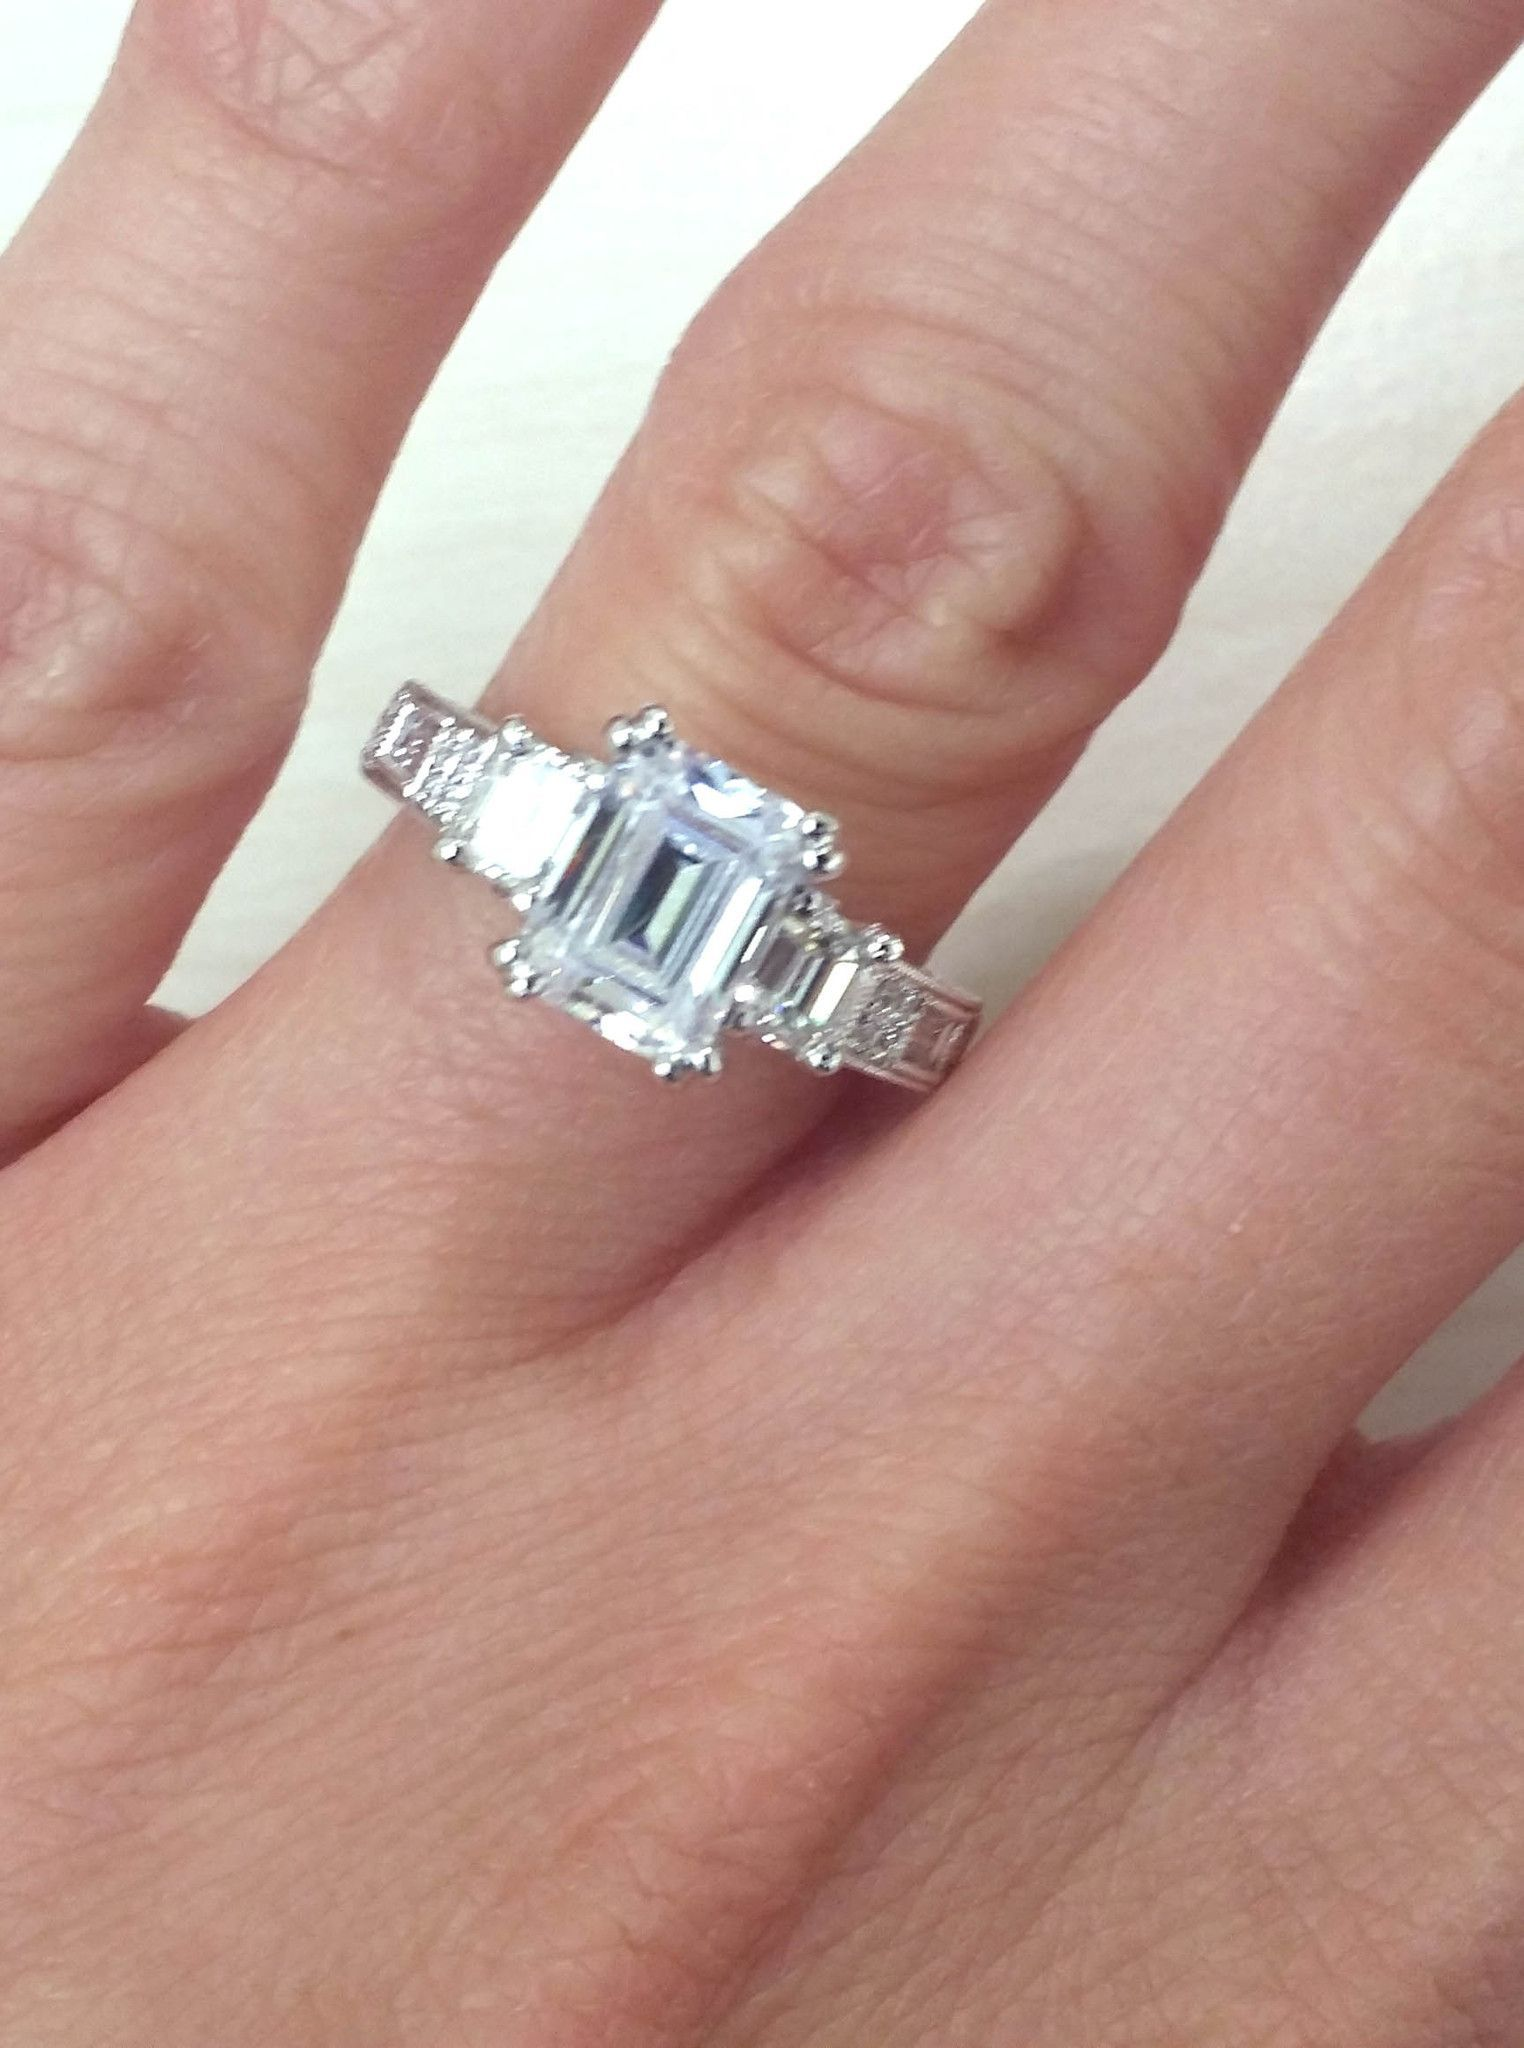 Awesome 3 Karat Emerald Cut Diamond Ring - Best Jewelry